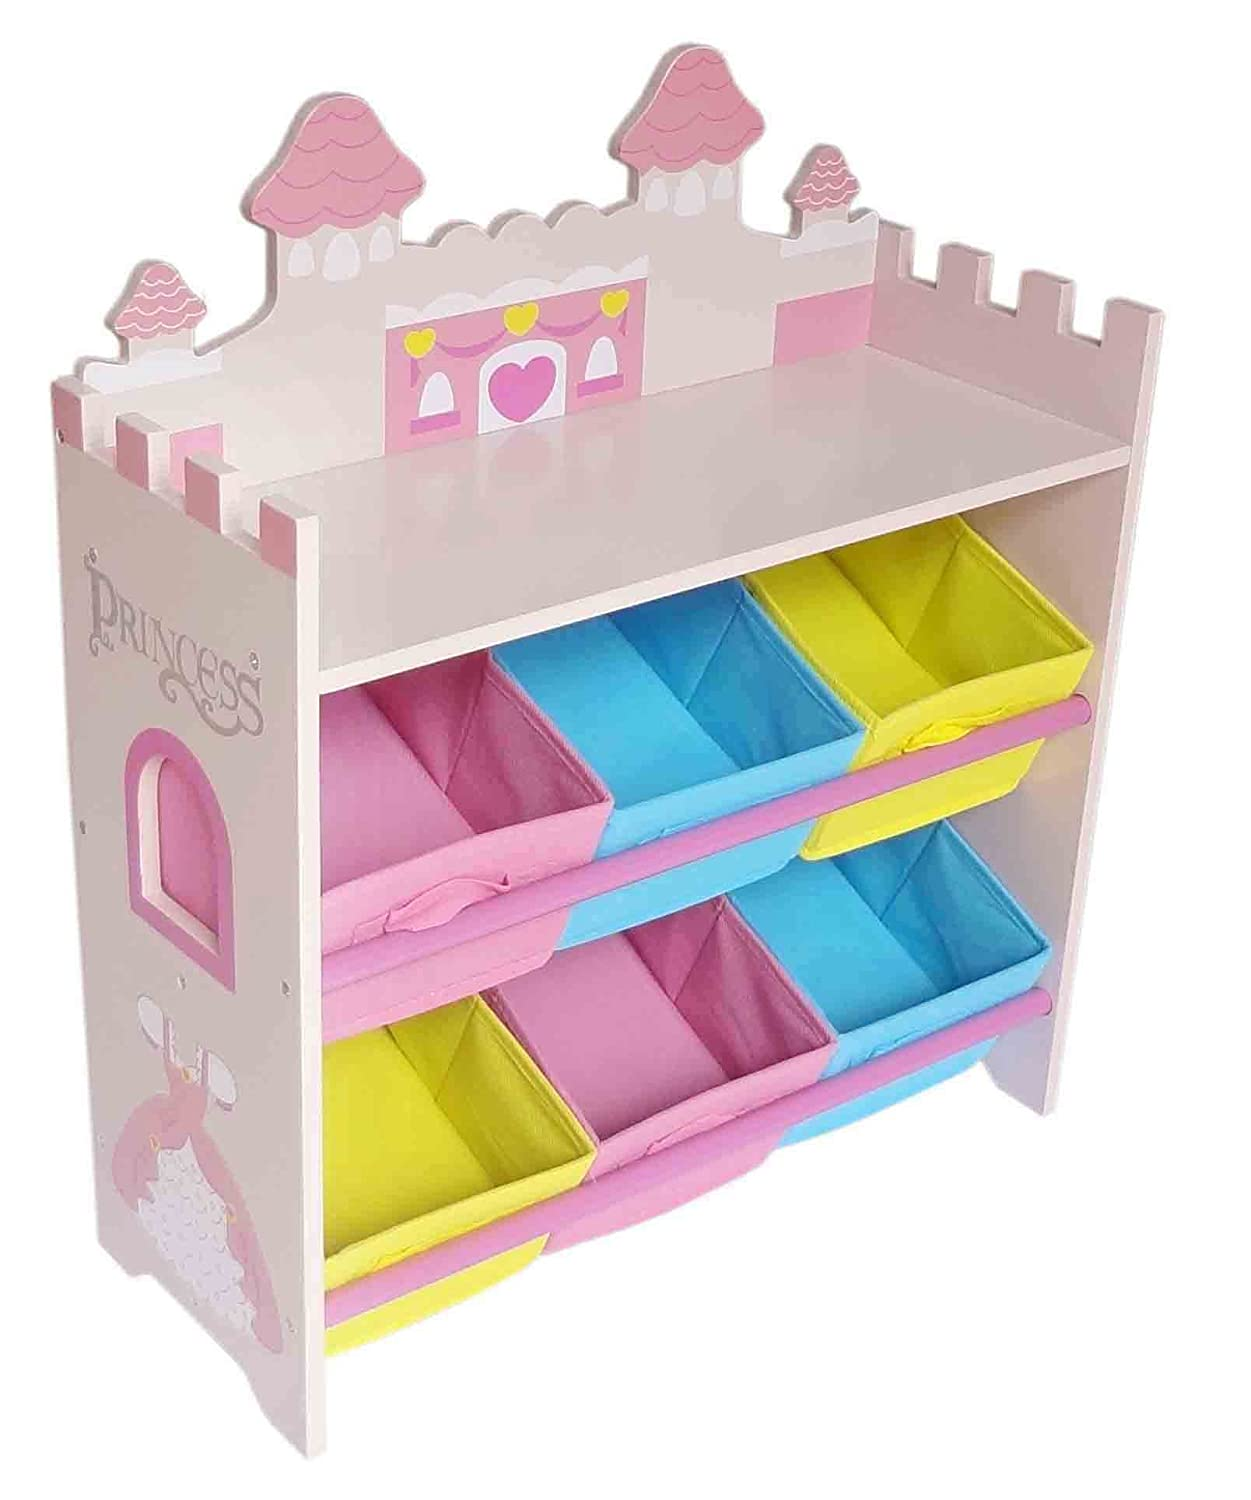 Kiddi Style Children's Sized Princess Castle Wooden Shelves With 6 Storage  Boxes